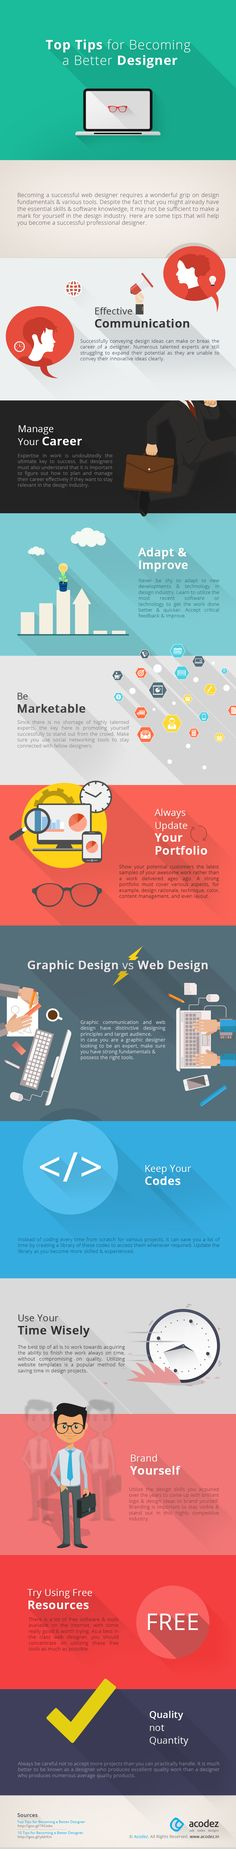 Want to know how to become a better web designer? Read on to find out how to establish your career as a great web designer!